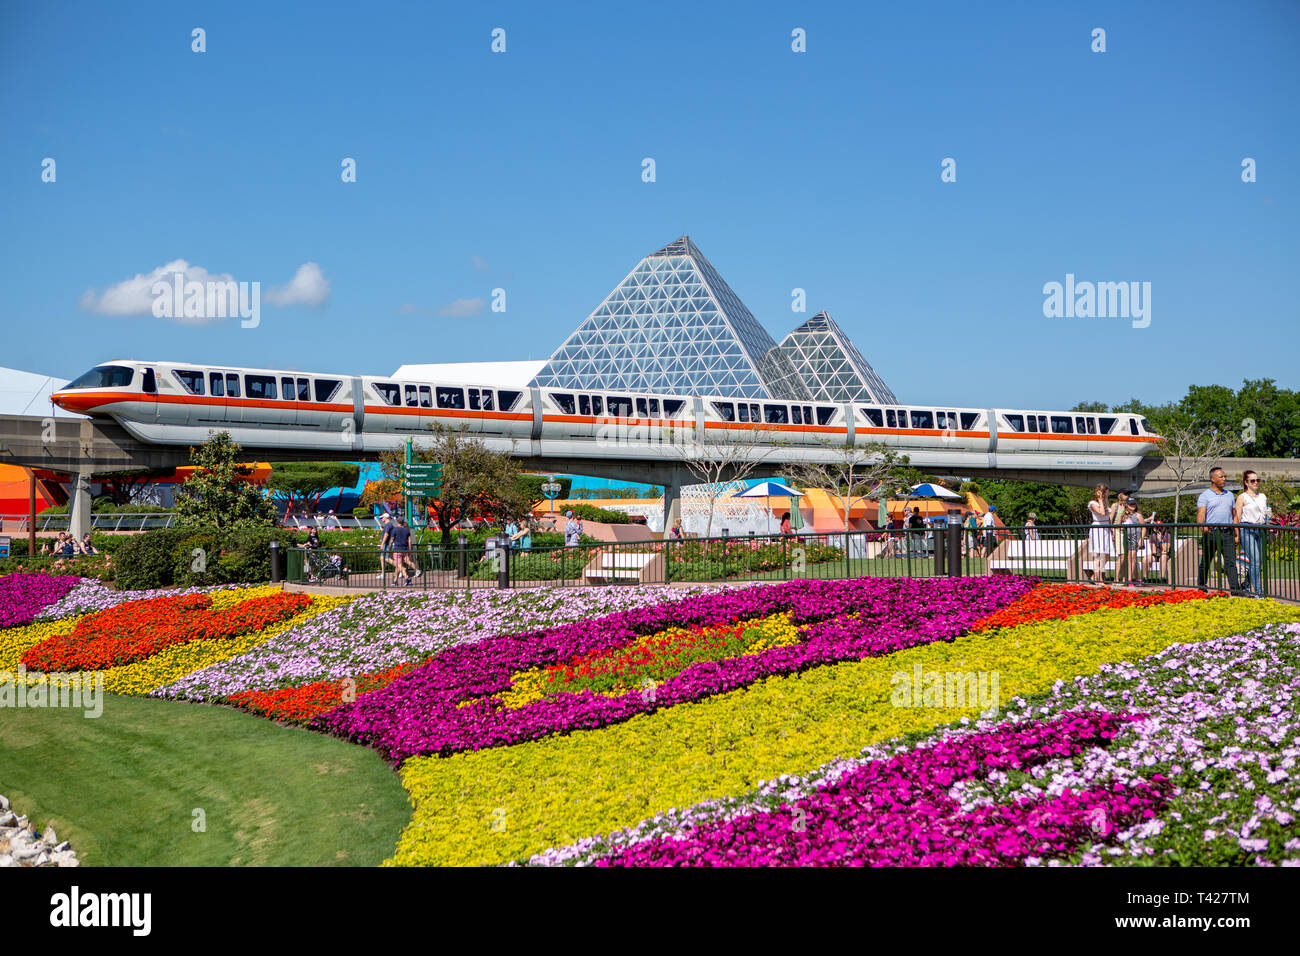 monorail passes in front of journey into your imagination amid